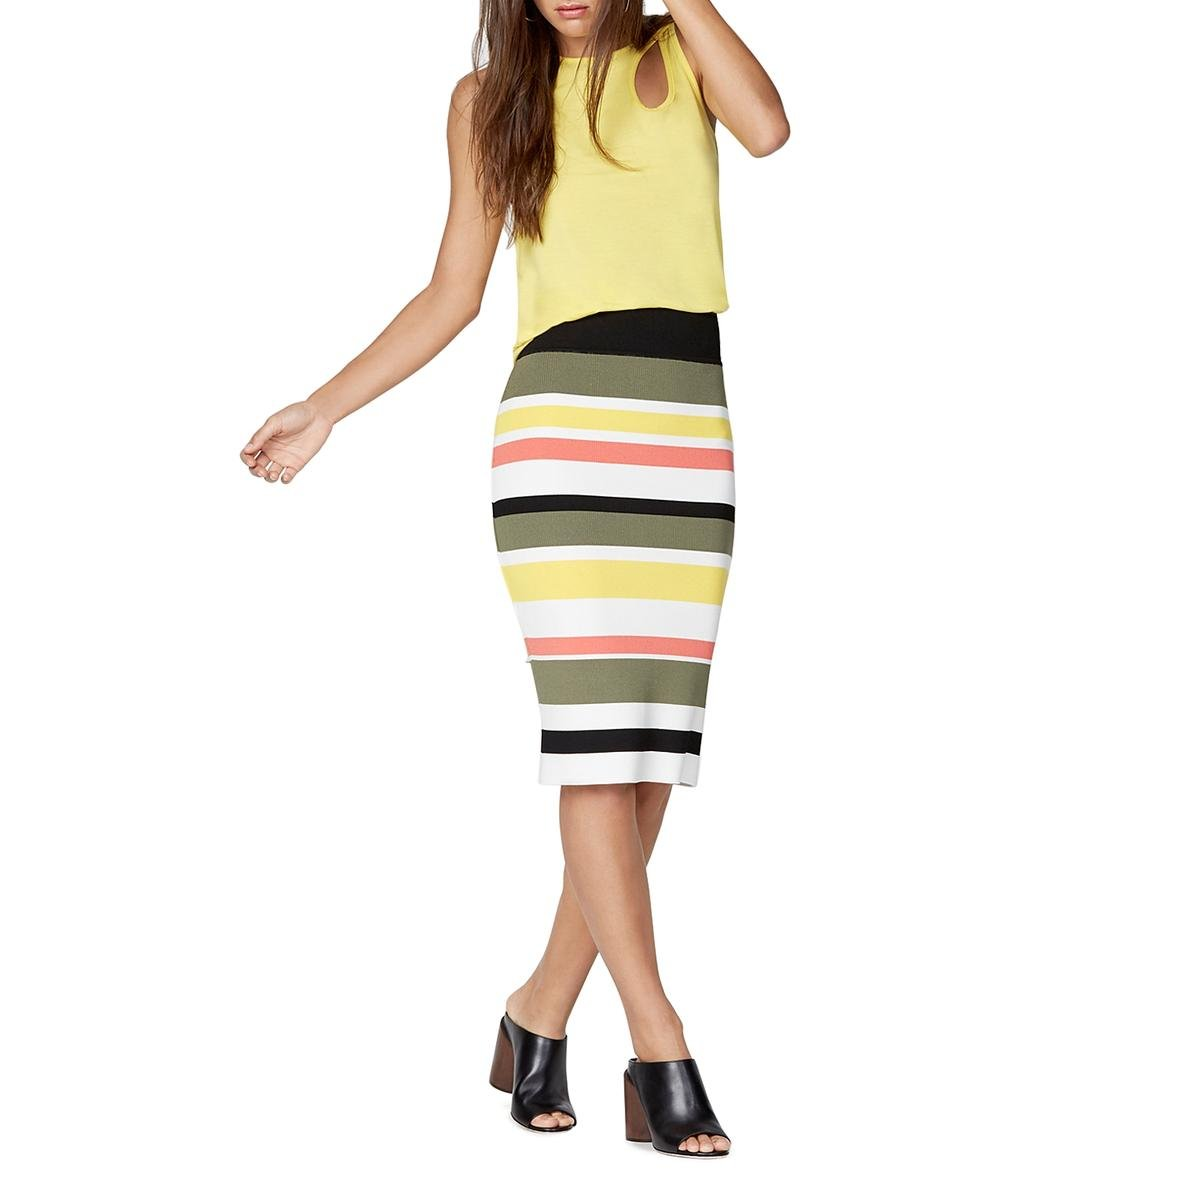 Bailey 44 Womens Knit Striped Pencil Skirt Yellow S